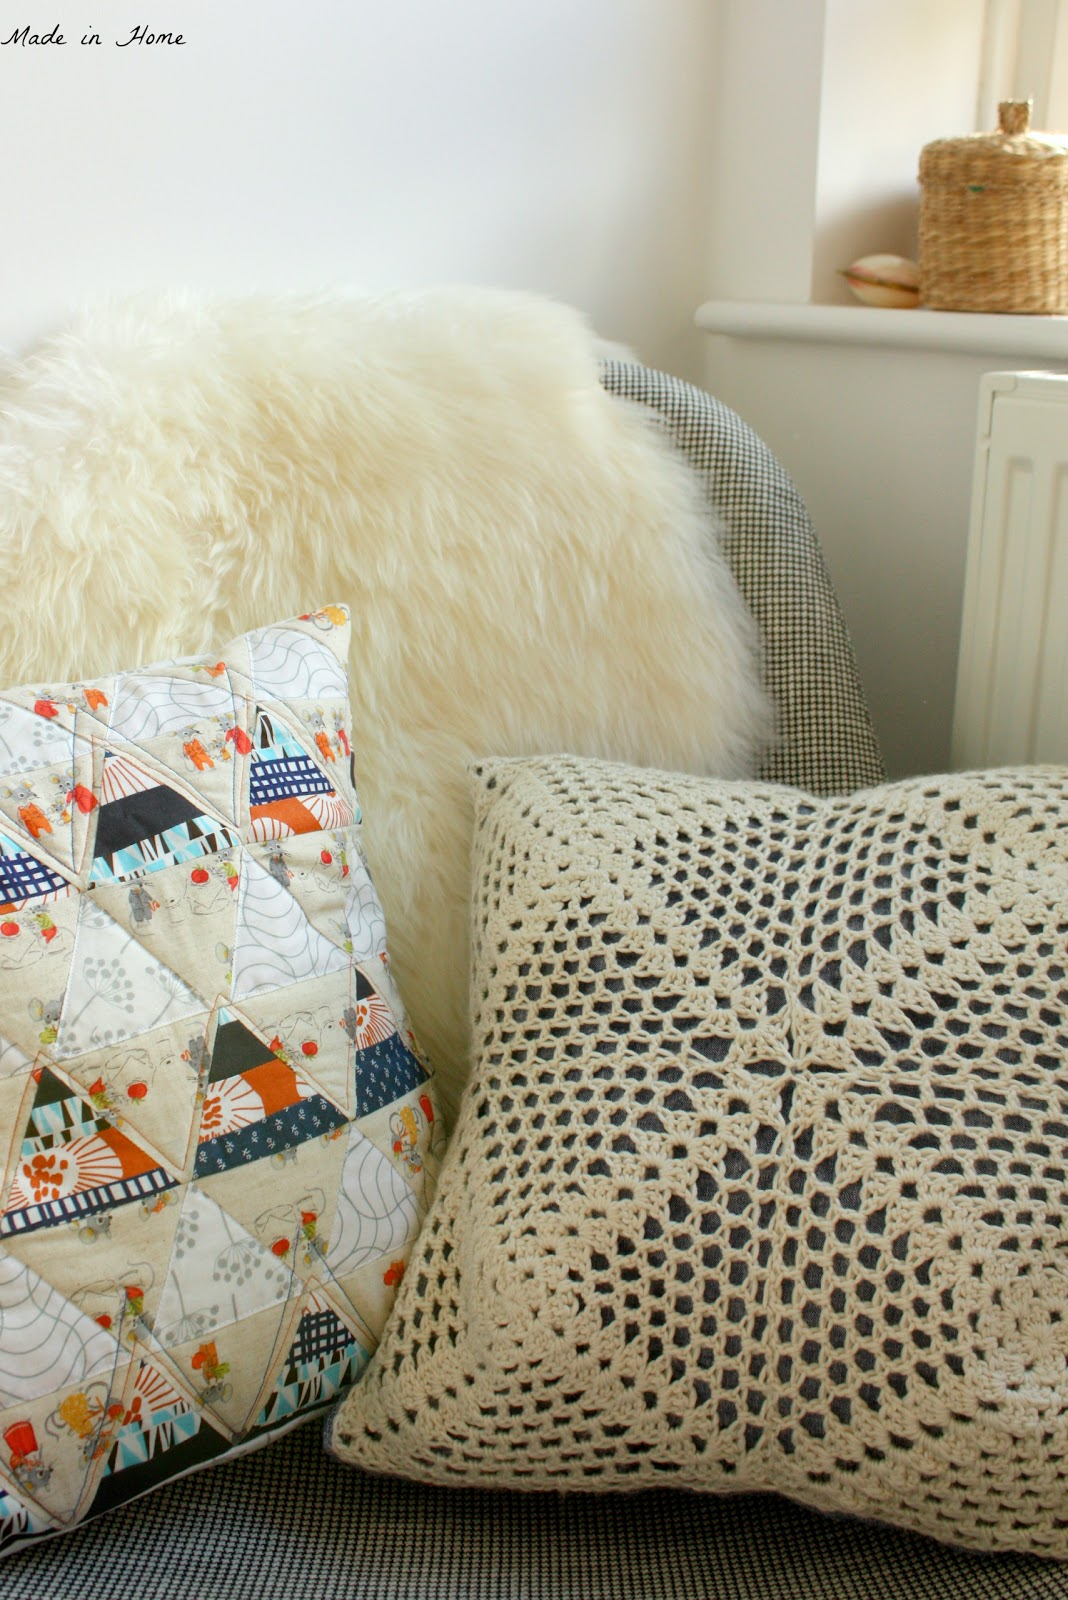 Made in Home: Vintage Crochet Cushion {Free Pattern}